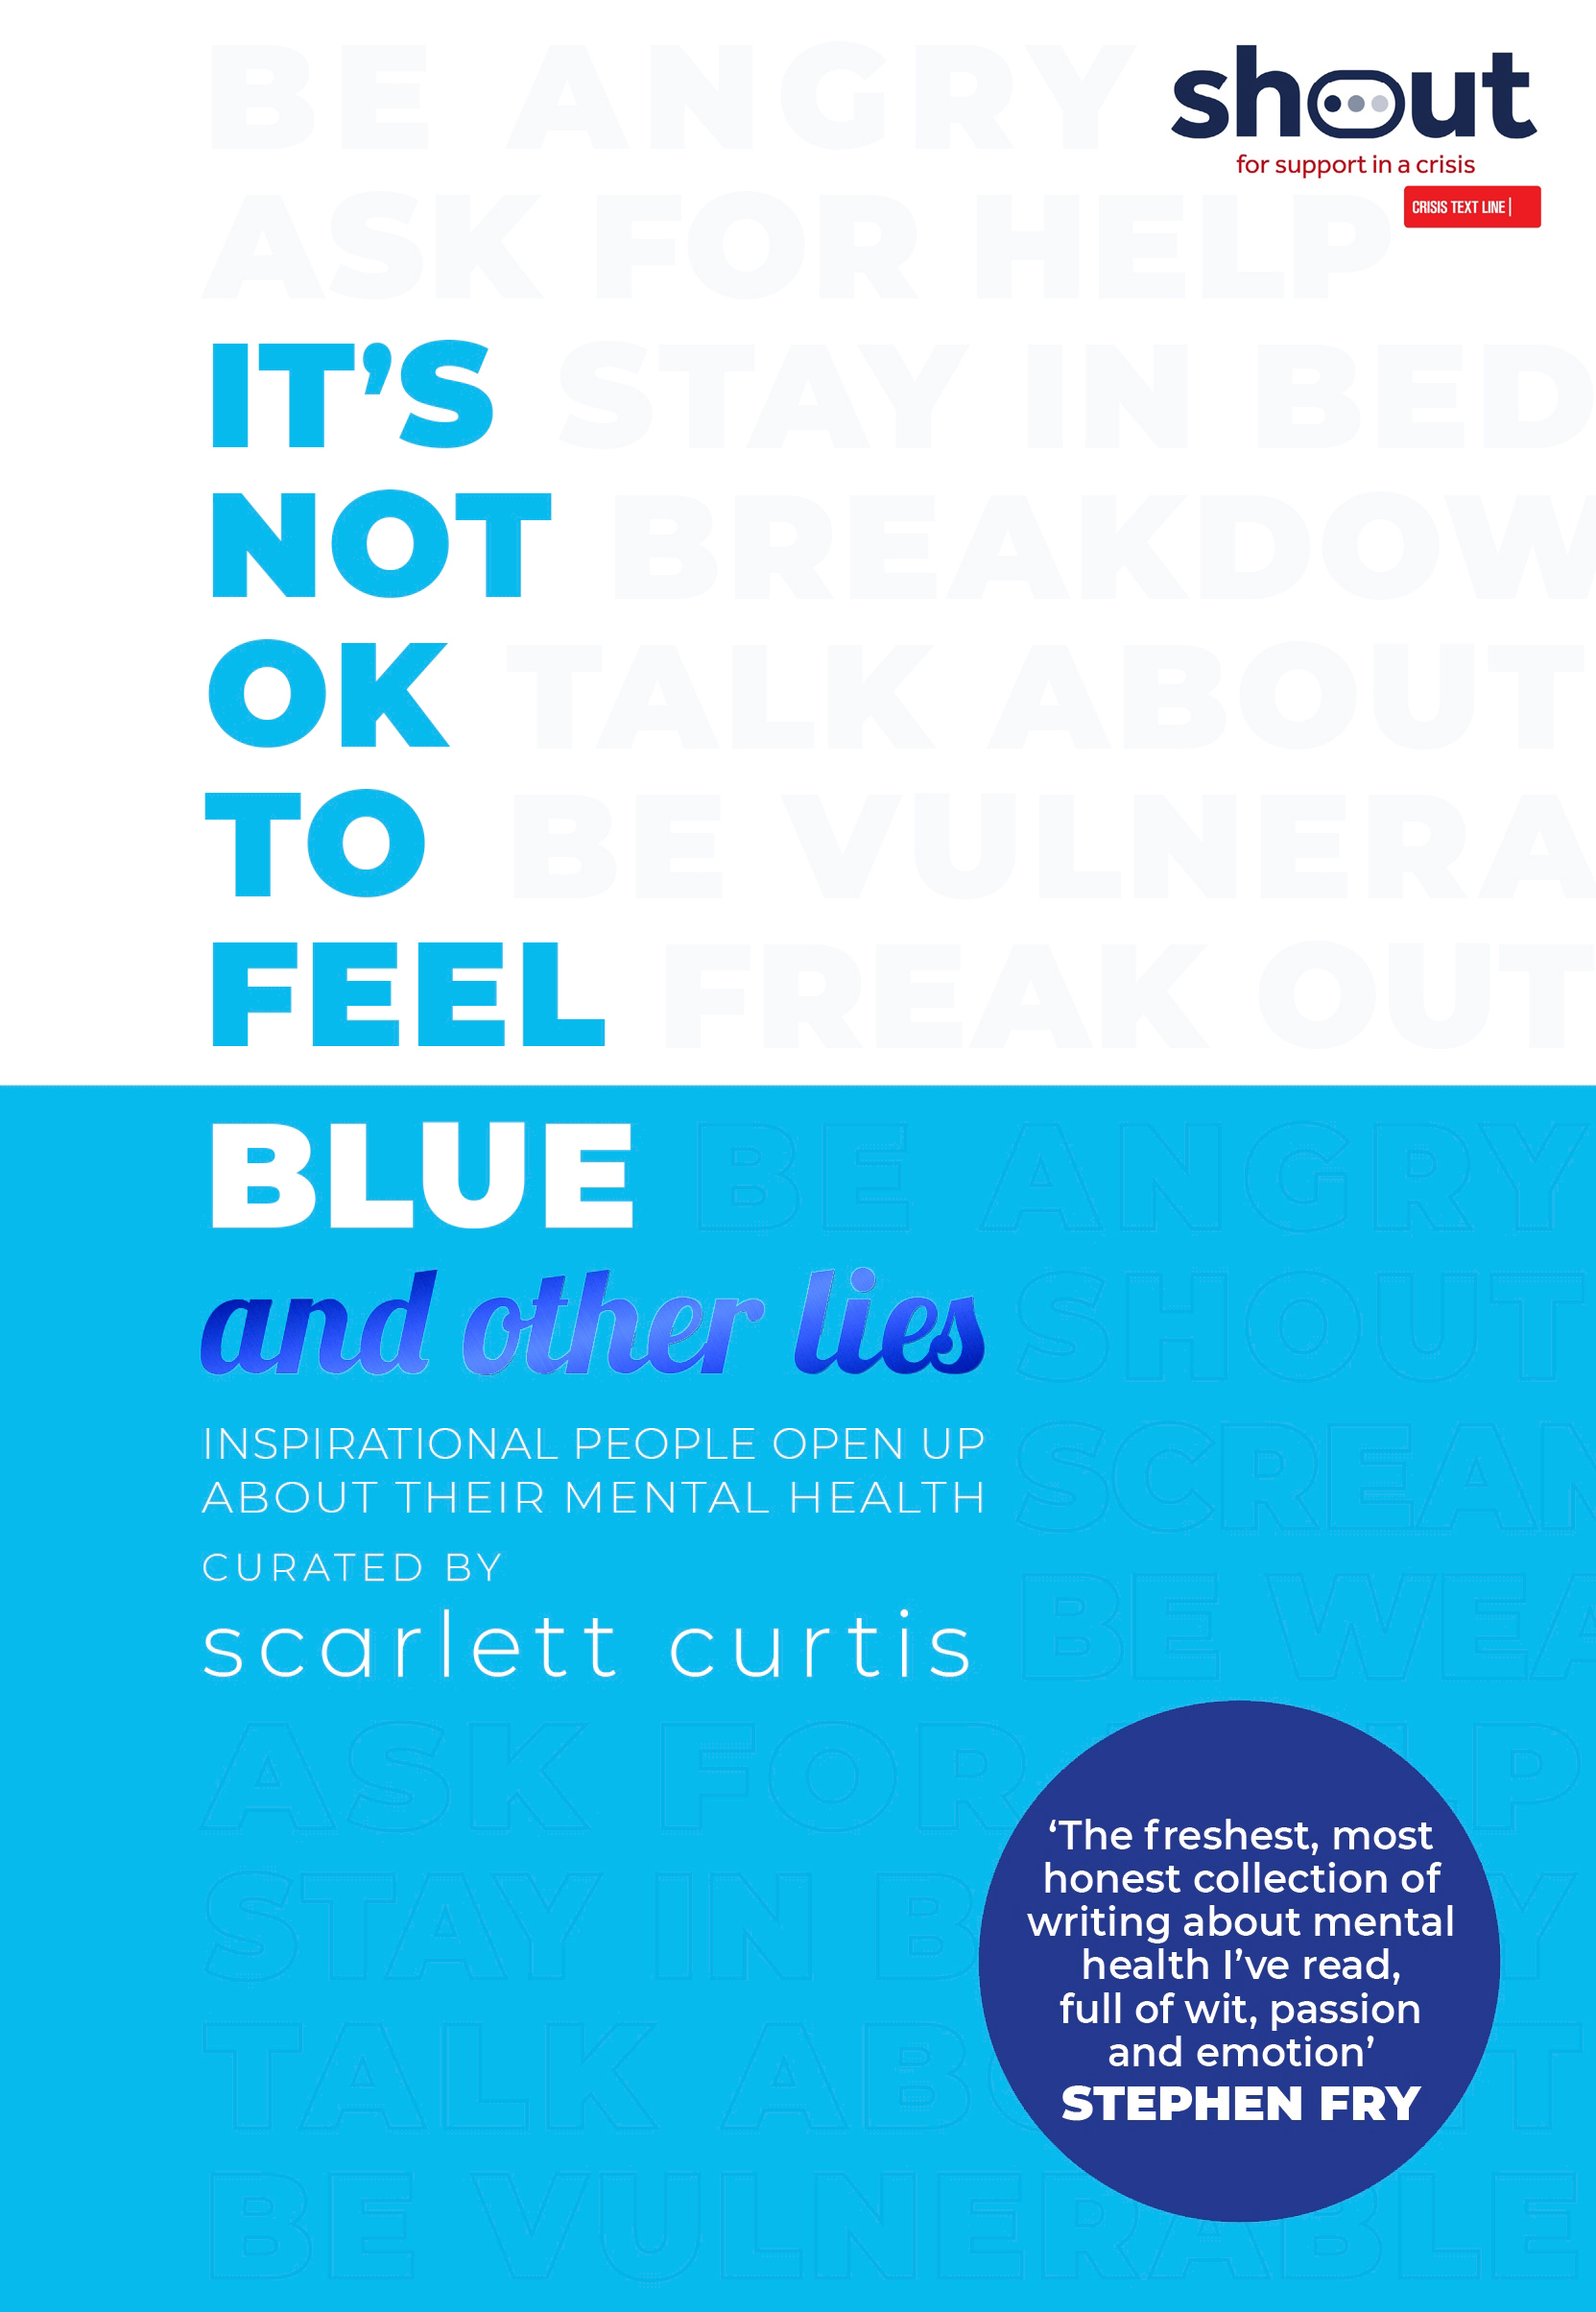 book cover for 'it's not ok to feel blue and other lies' by Scarlett Curtis